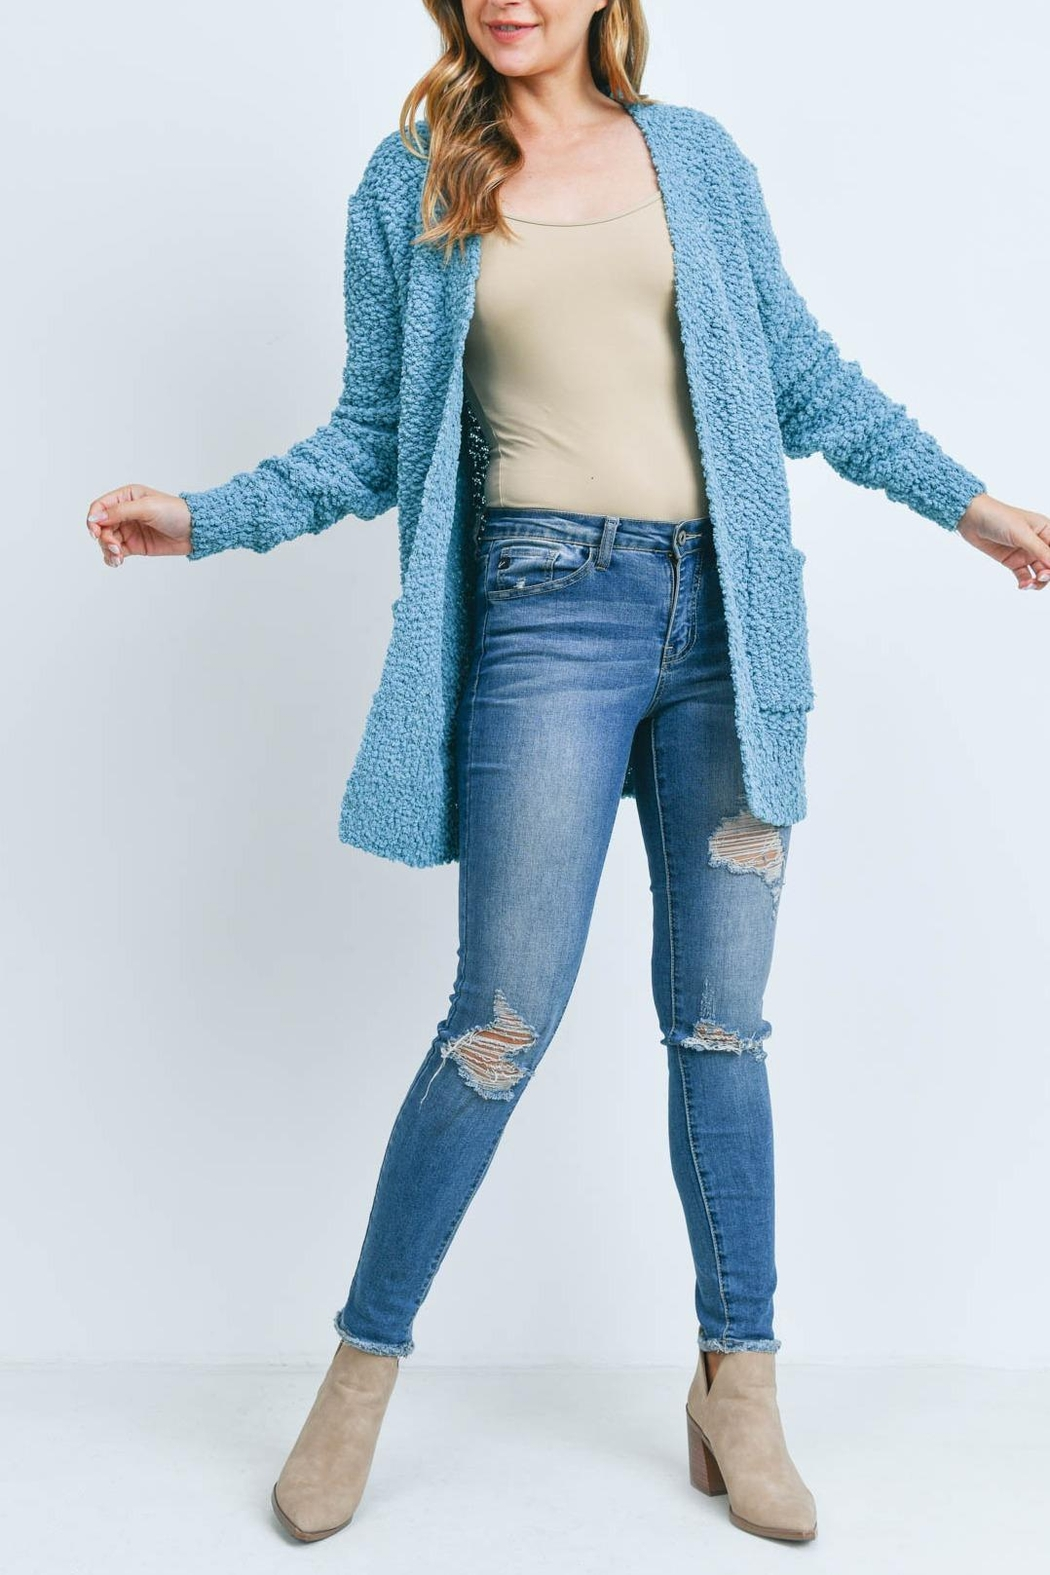 Riah Fashion Popcorn-Sweater-Cardigan-With-Pockets-Americano - Front Cropped Image